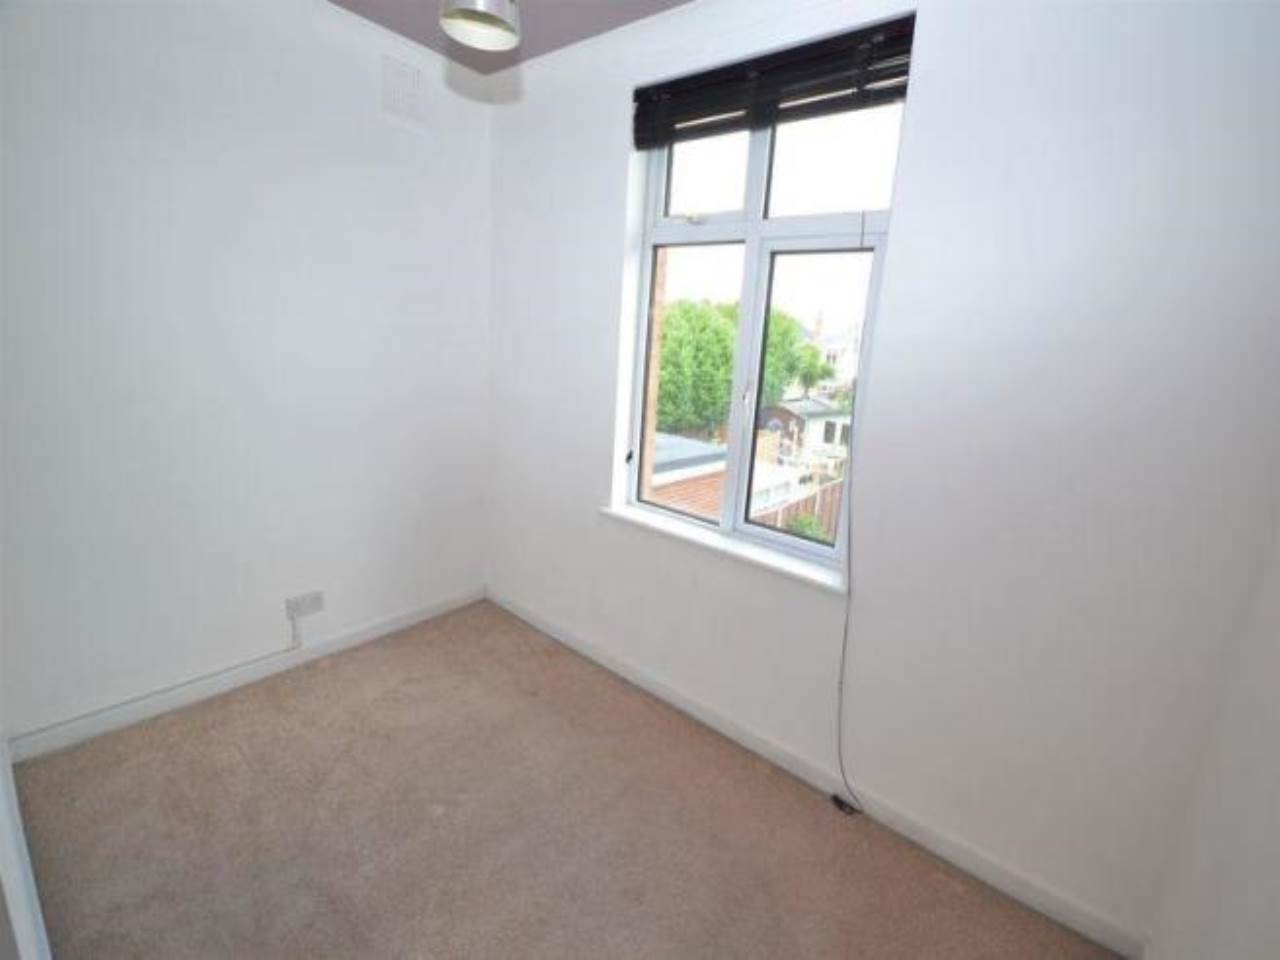 4 bed house for sale in Cowper Road, Moordown  - Property Image 15